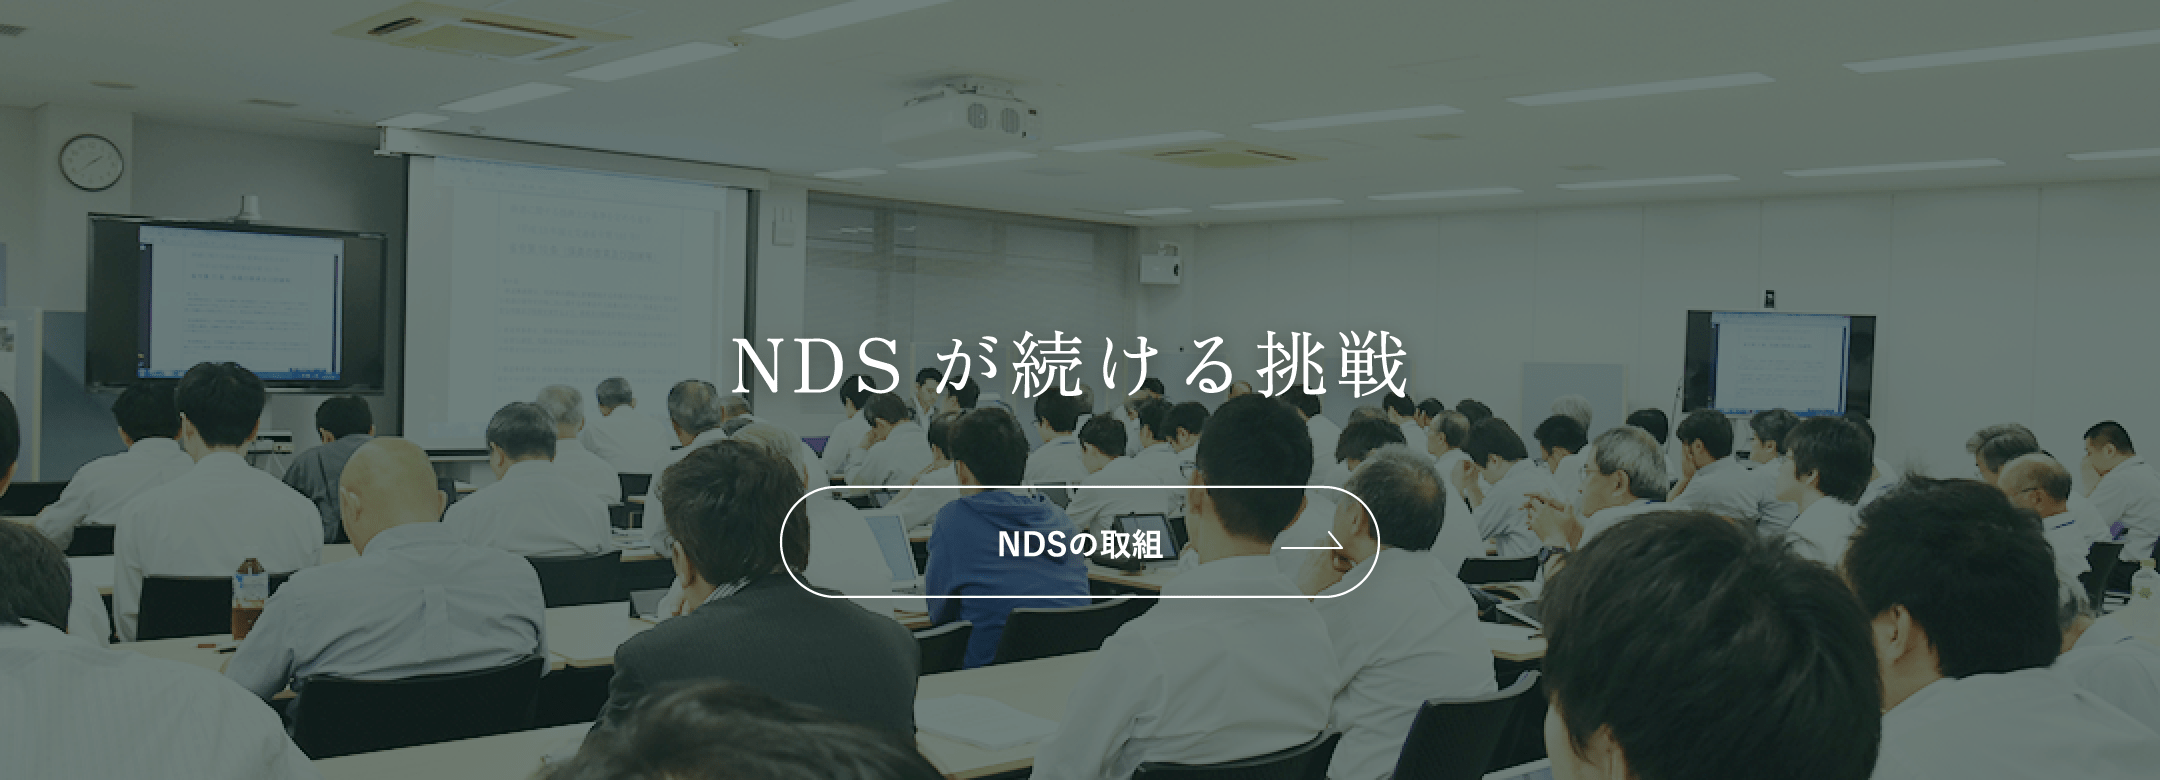 NDSの取組